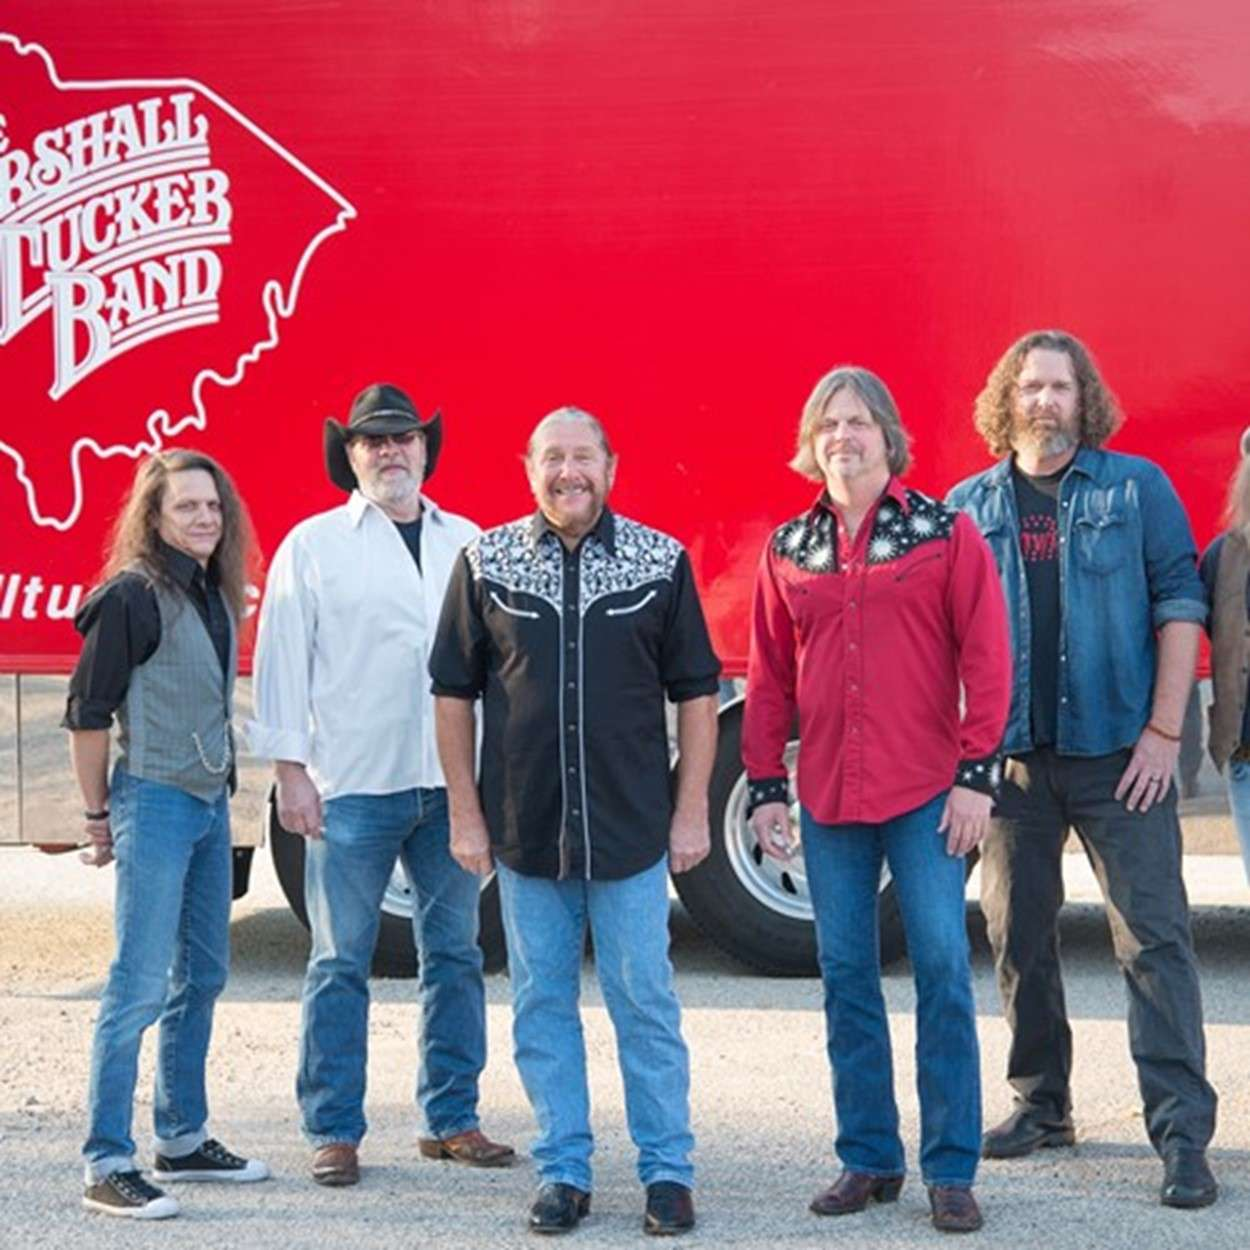 Marshall Tucker Band Spectacle Live